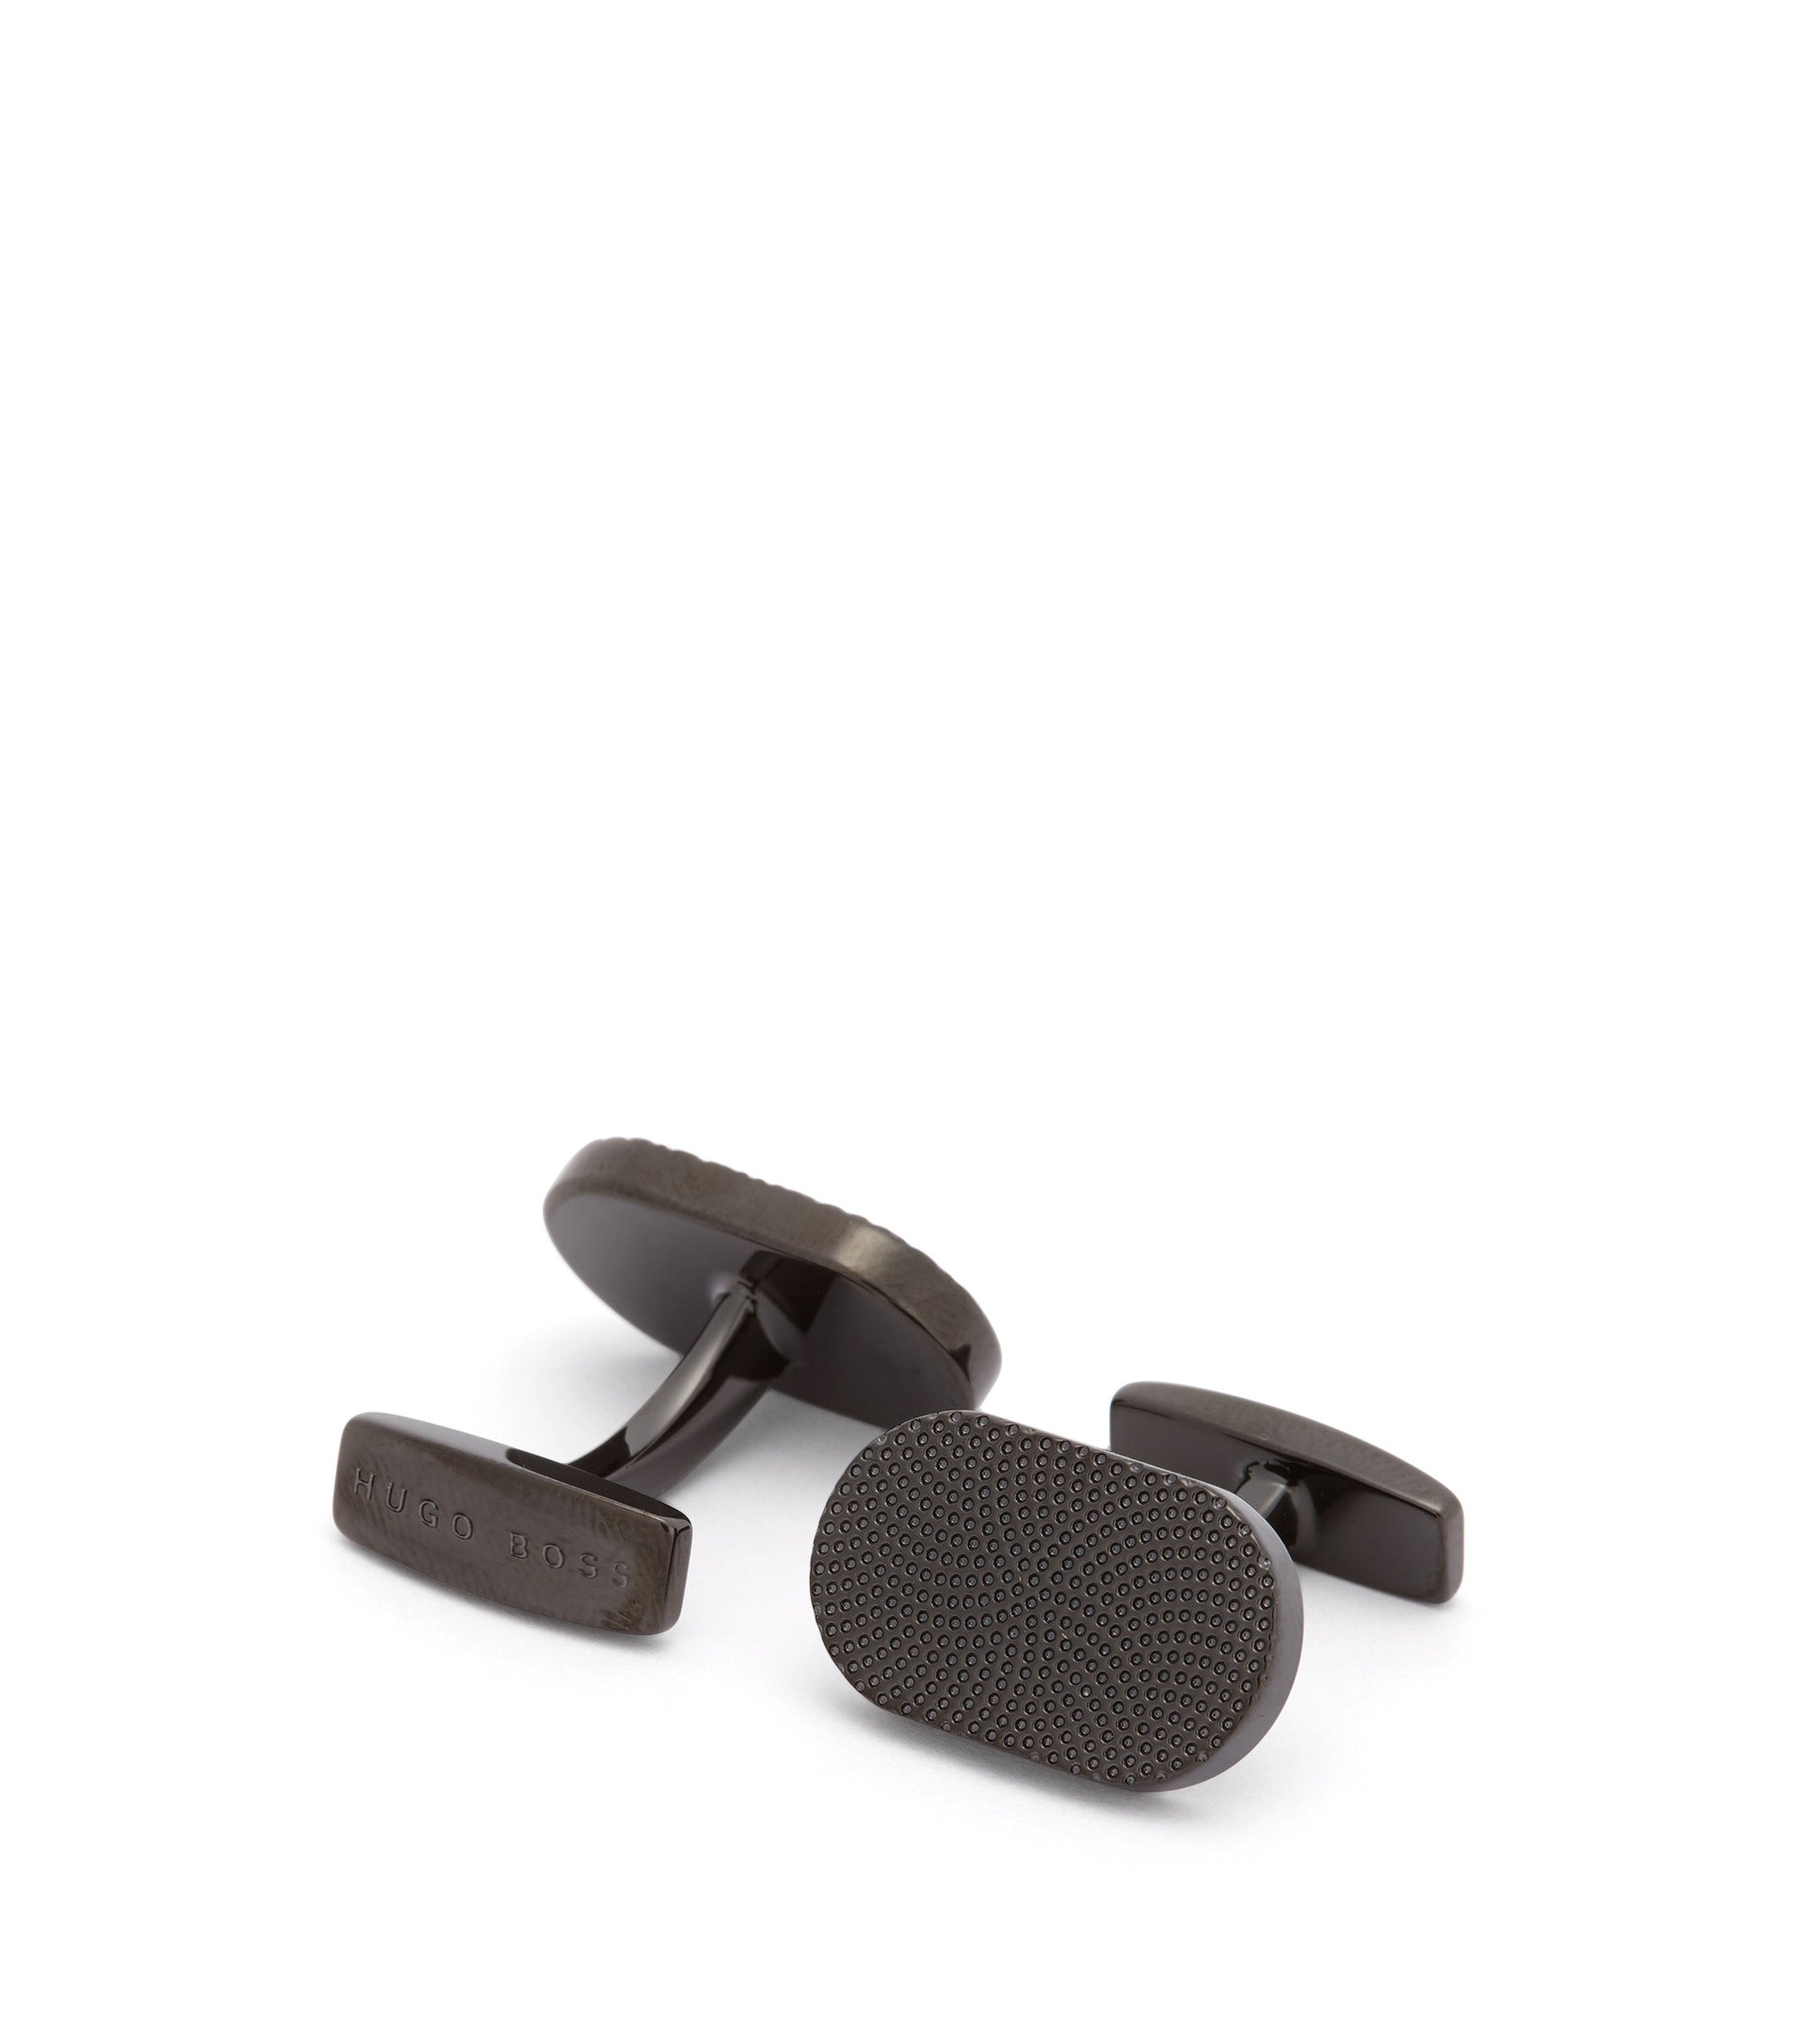 Concentric Brass Cufflinks | Joe, Black